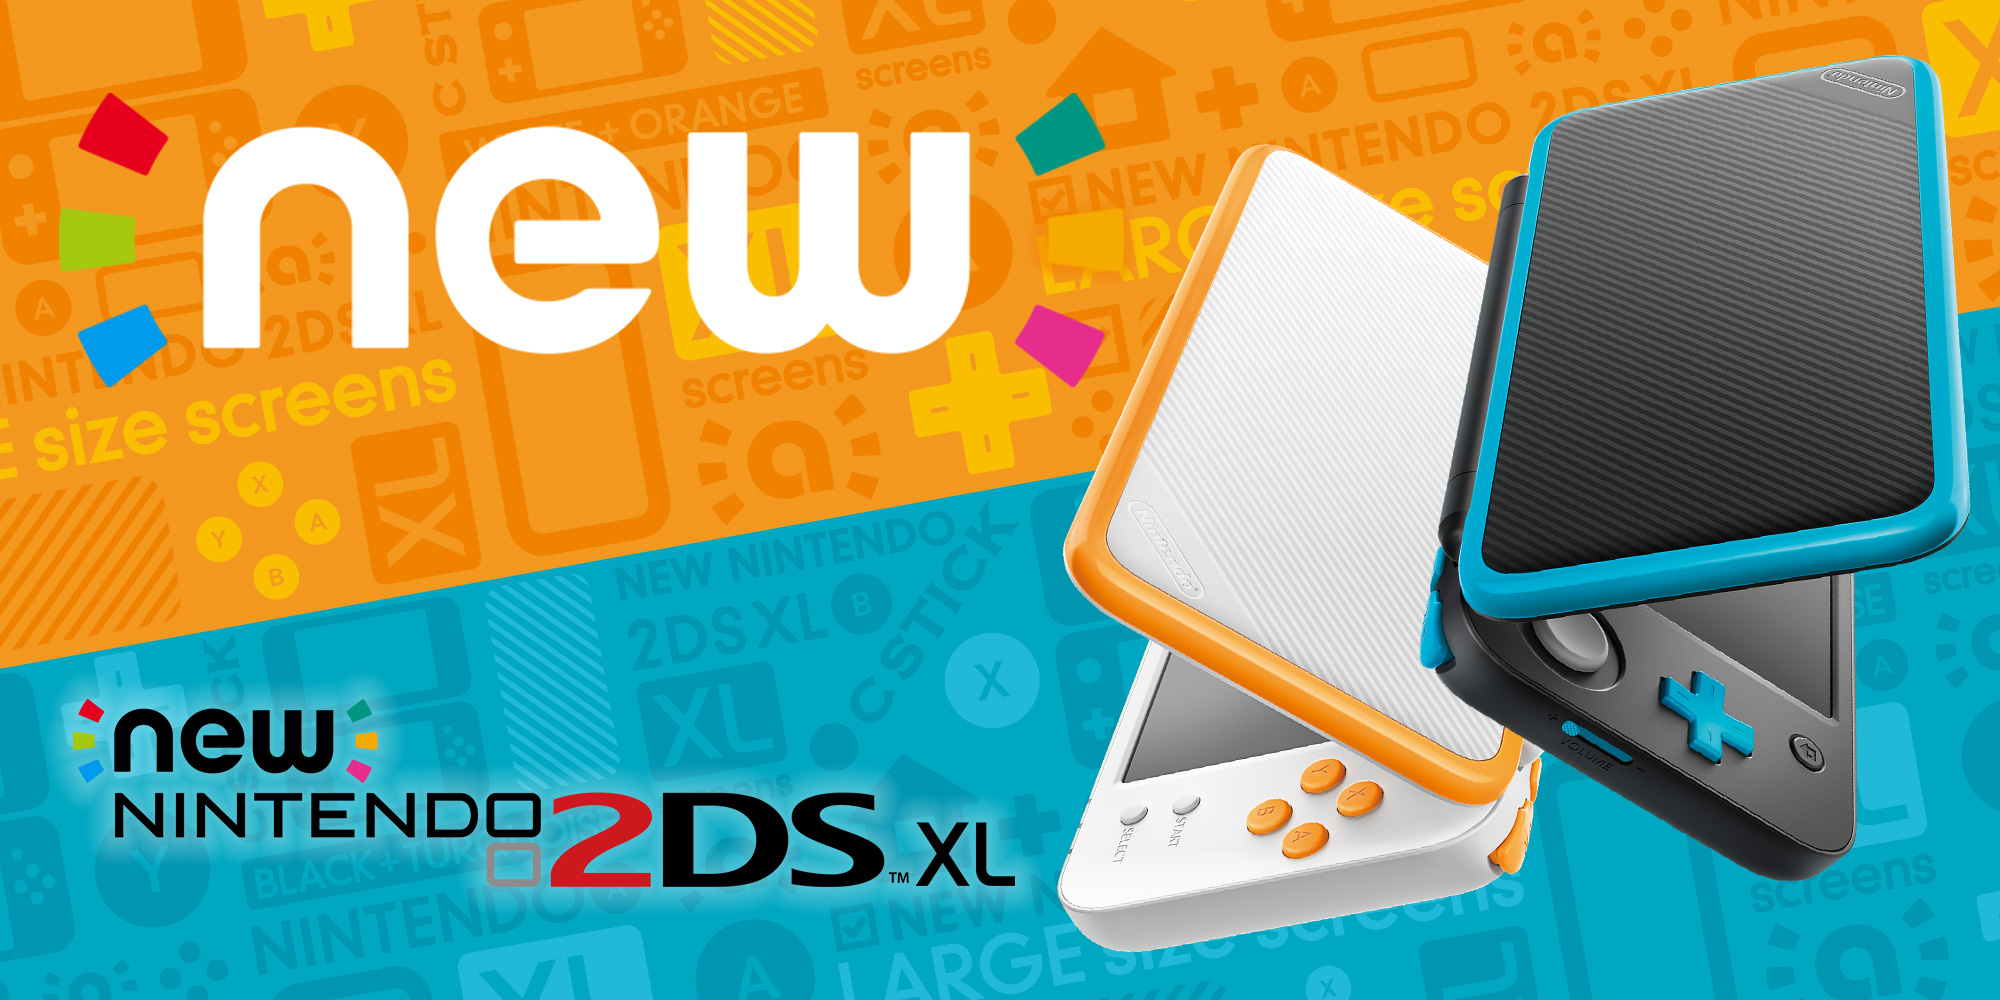 Anunciada New 2DS XL, disponible el 29 de julio